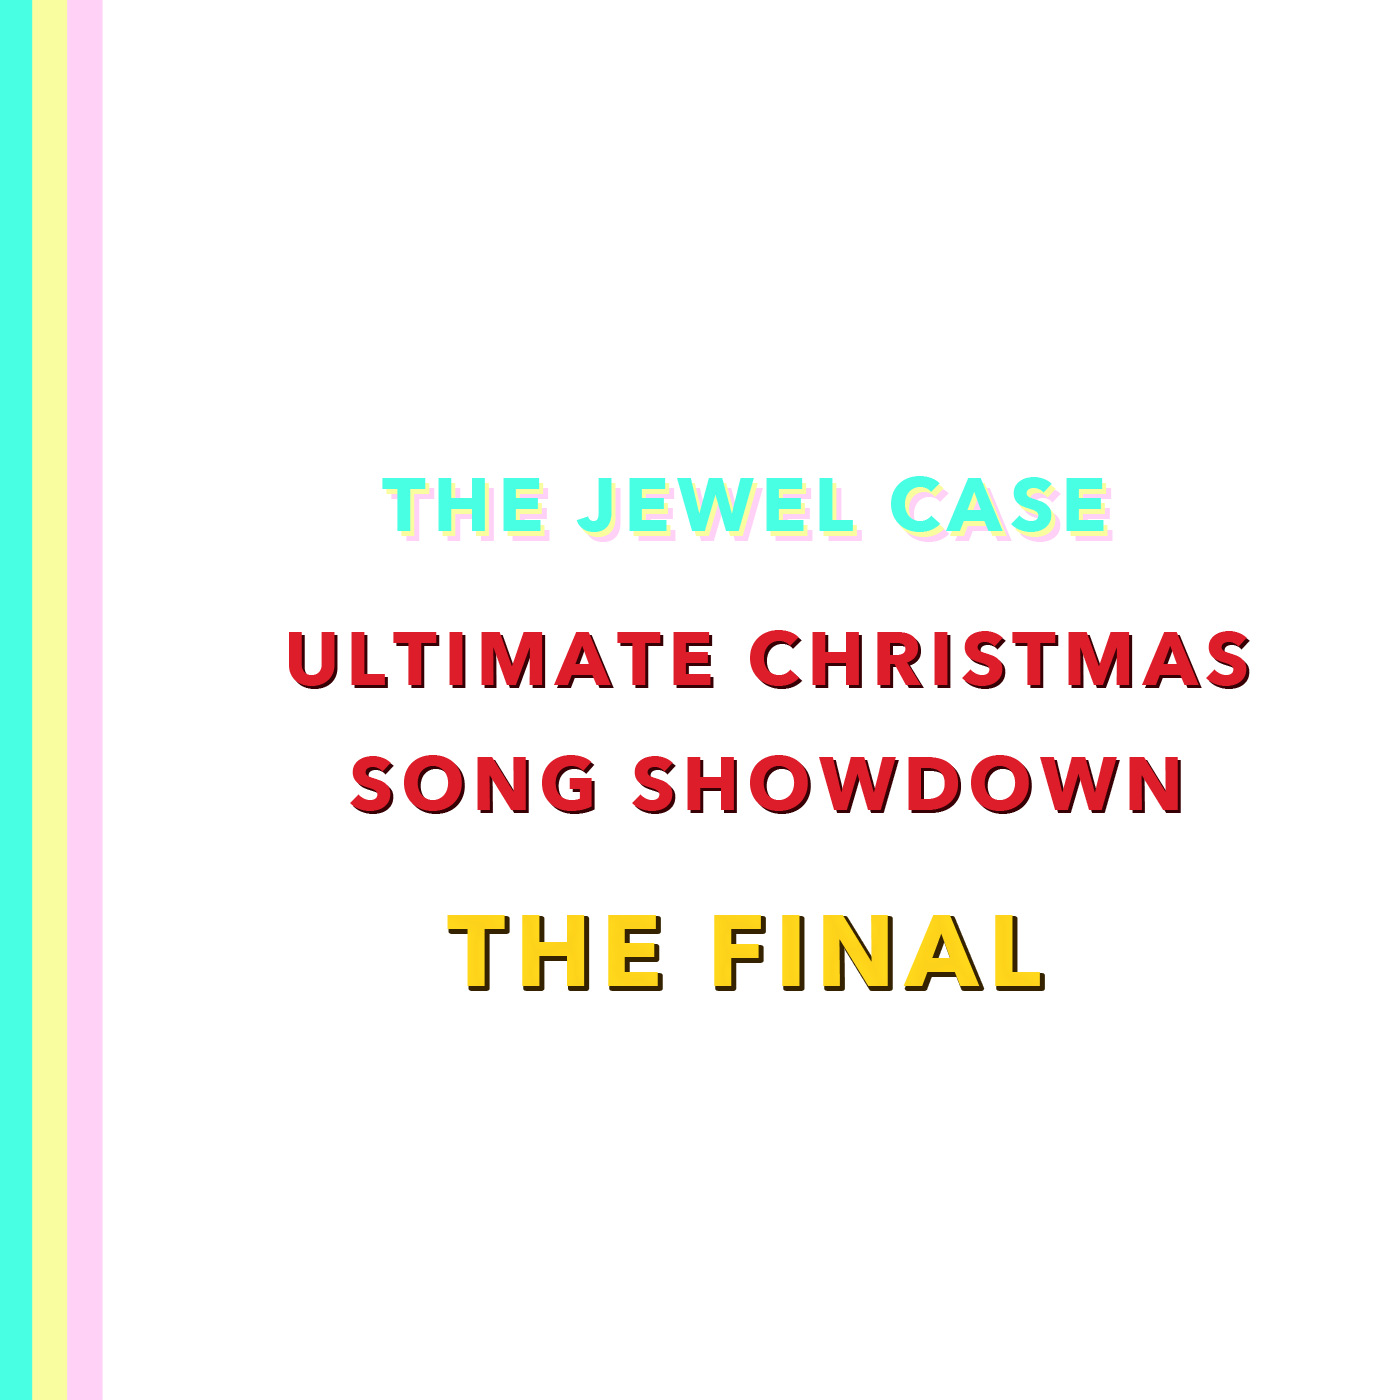 Ep. 42: Ultimate Christmas Song Showdown (Part 2) - THE JEWEL CASE